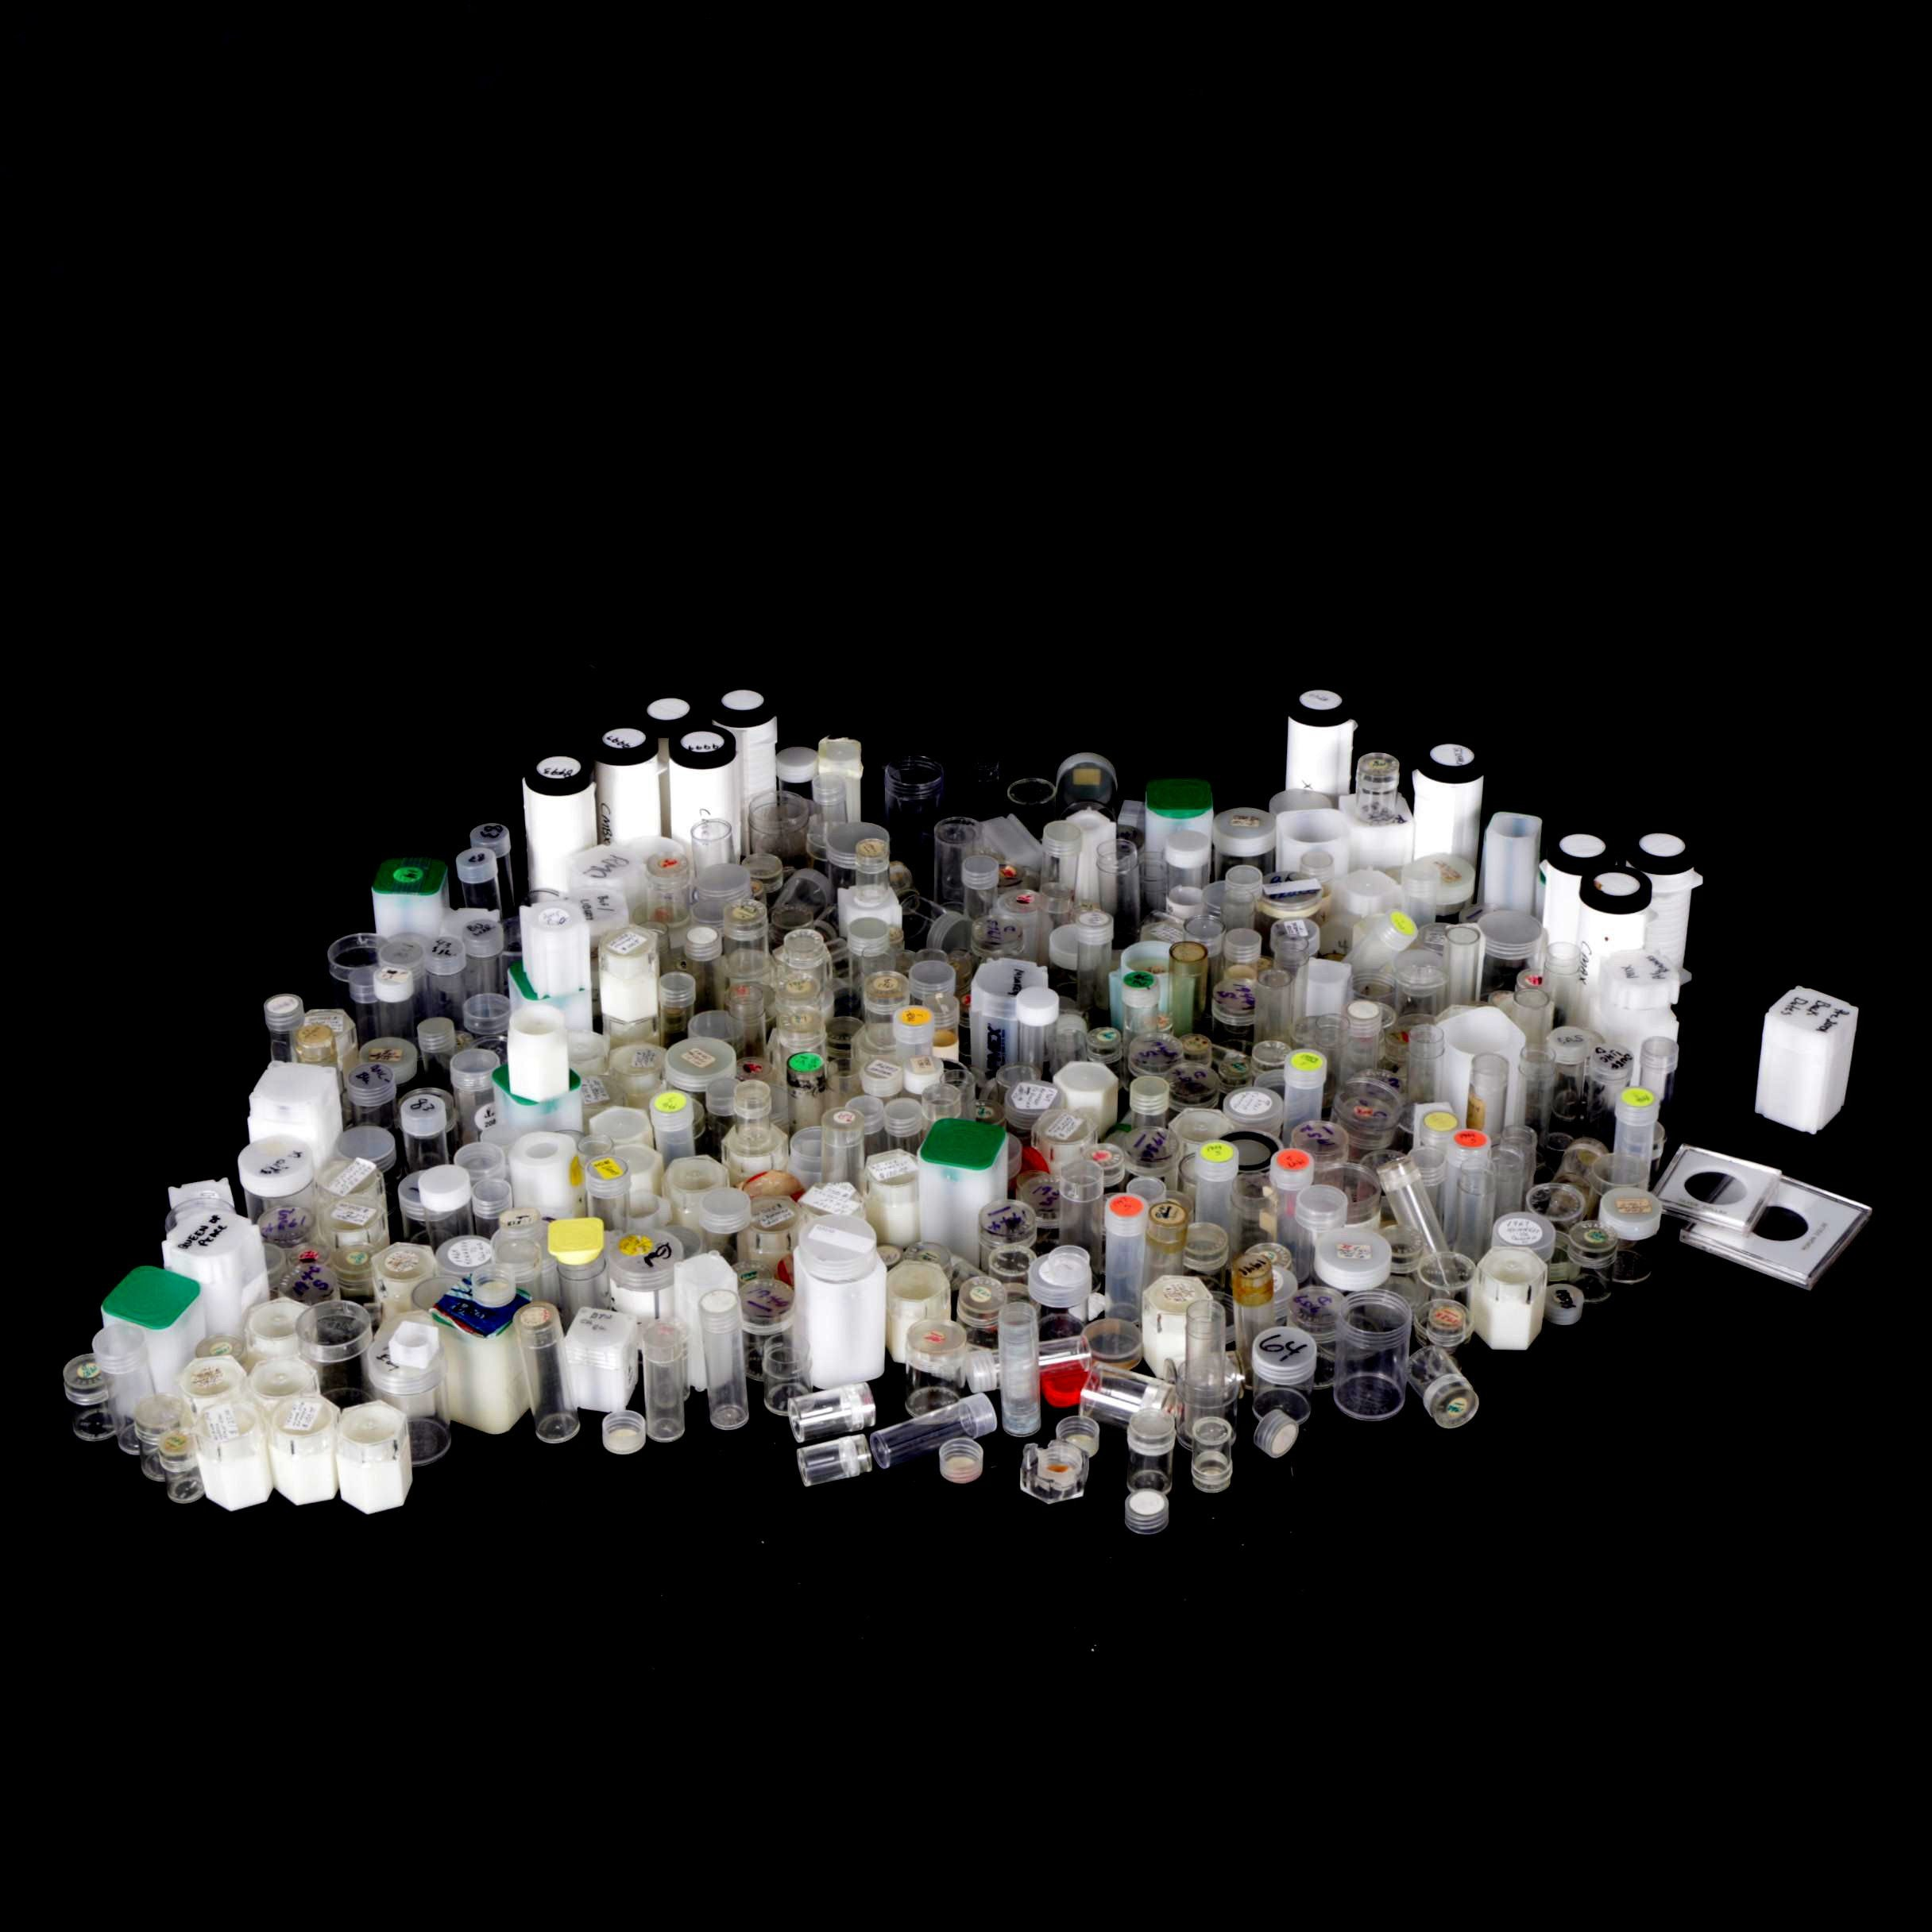 Plastic Coin Tubes and Other Bottles